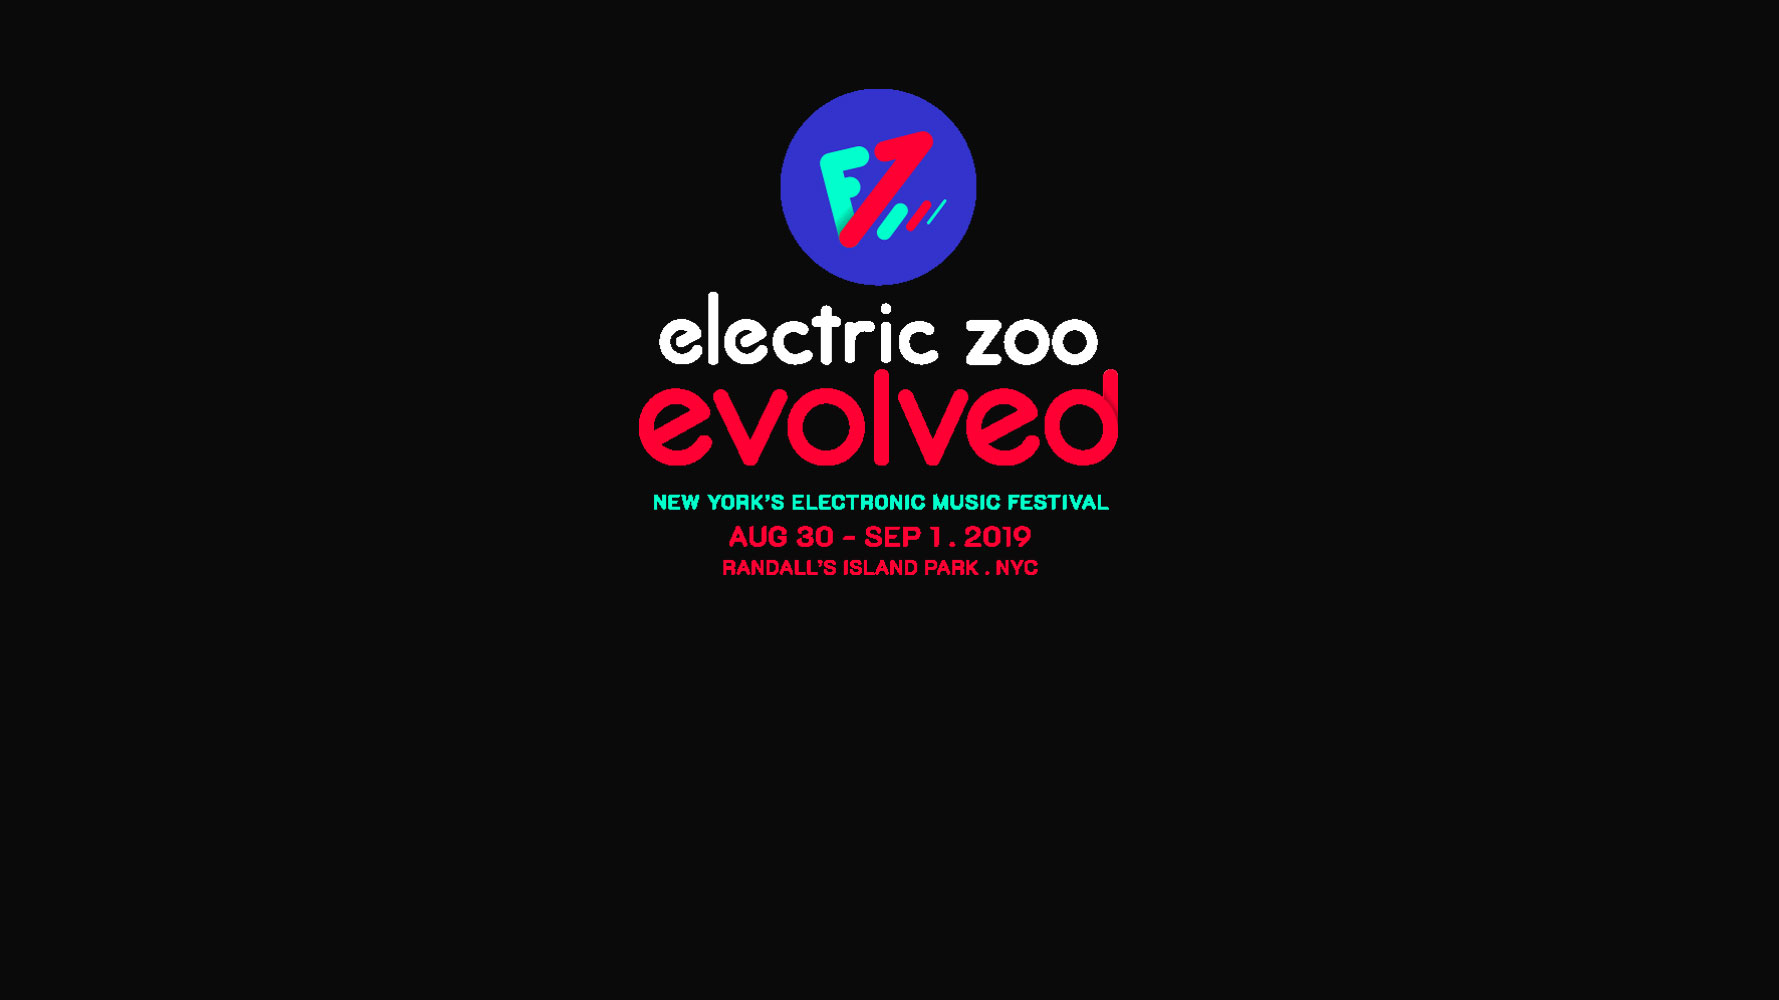 Electric Zoo Evolved 2019